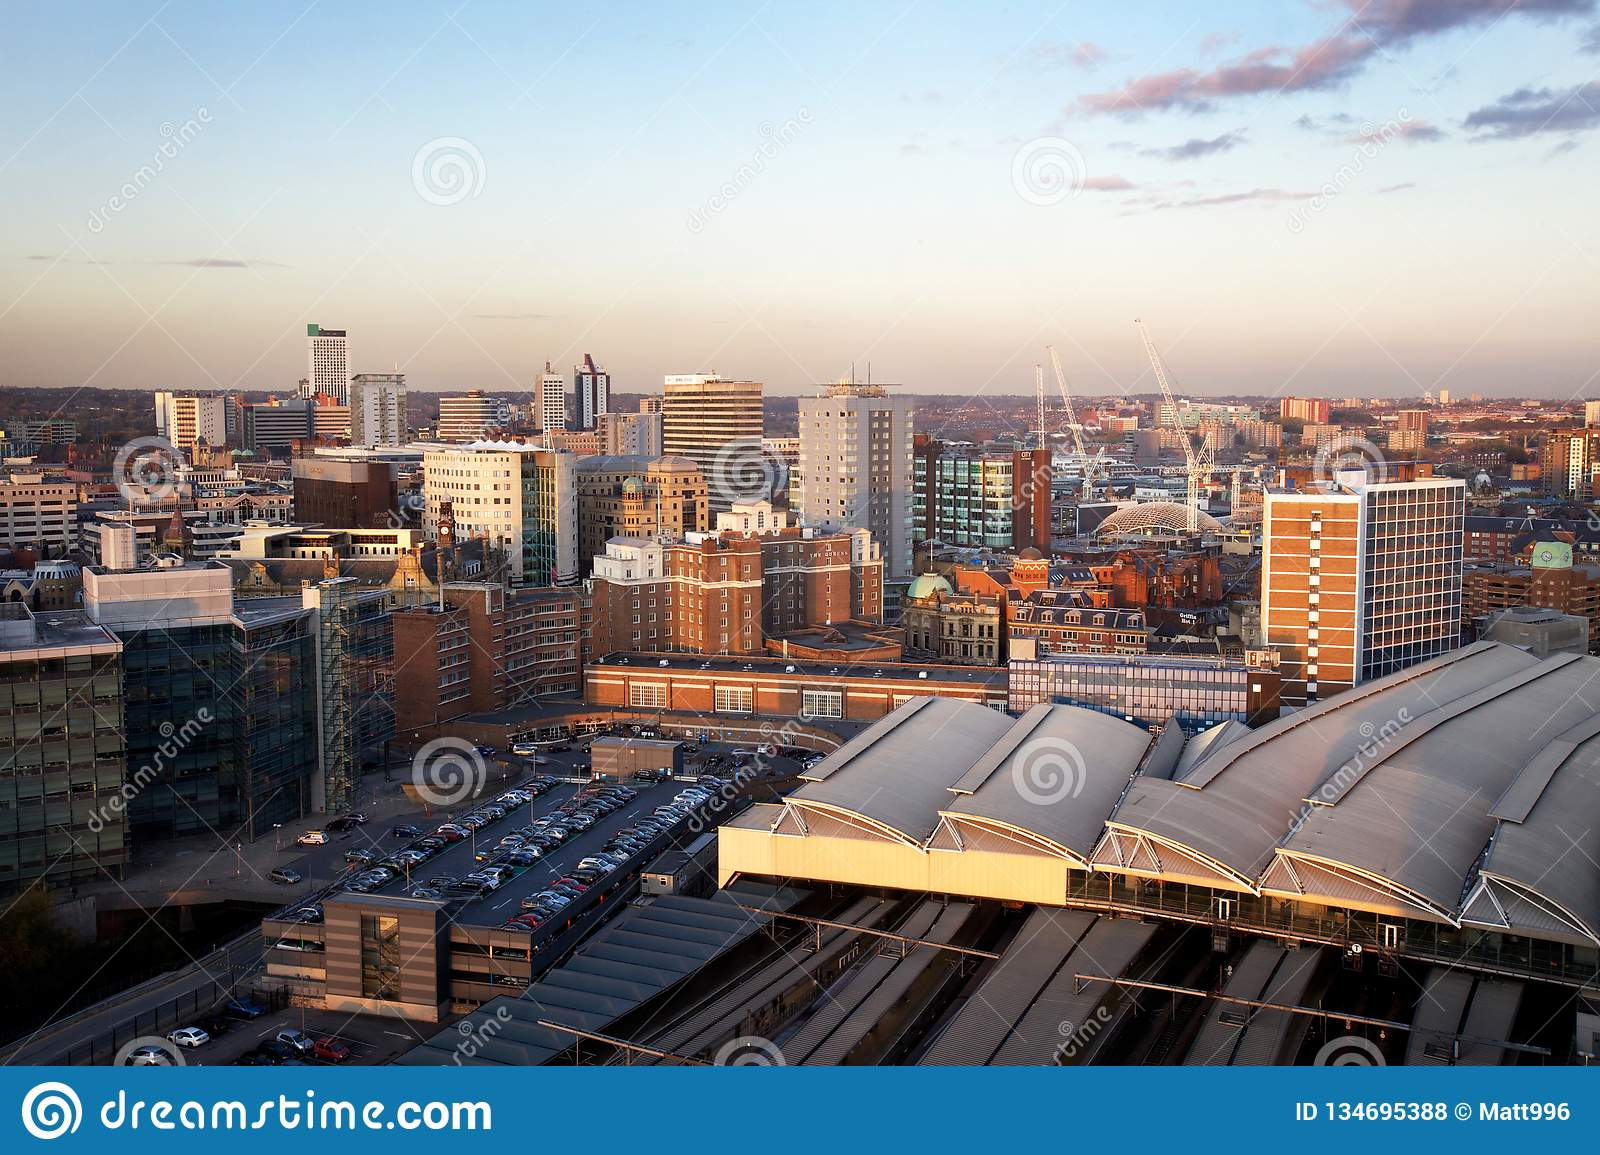 Northern powerhouse city travel infastructure